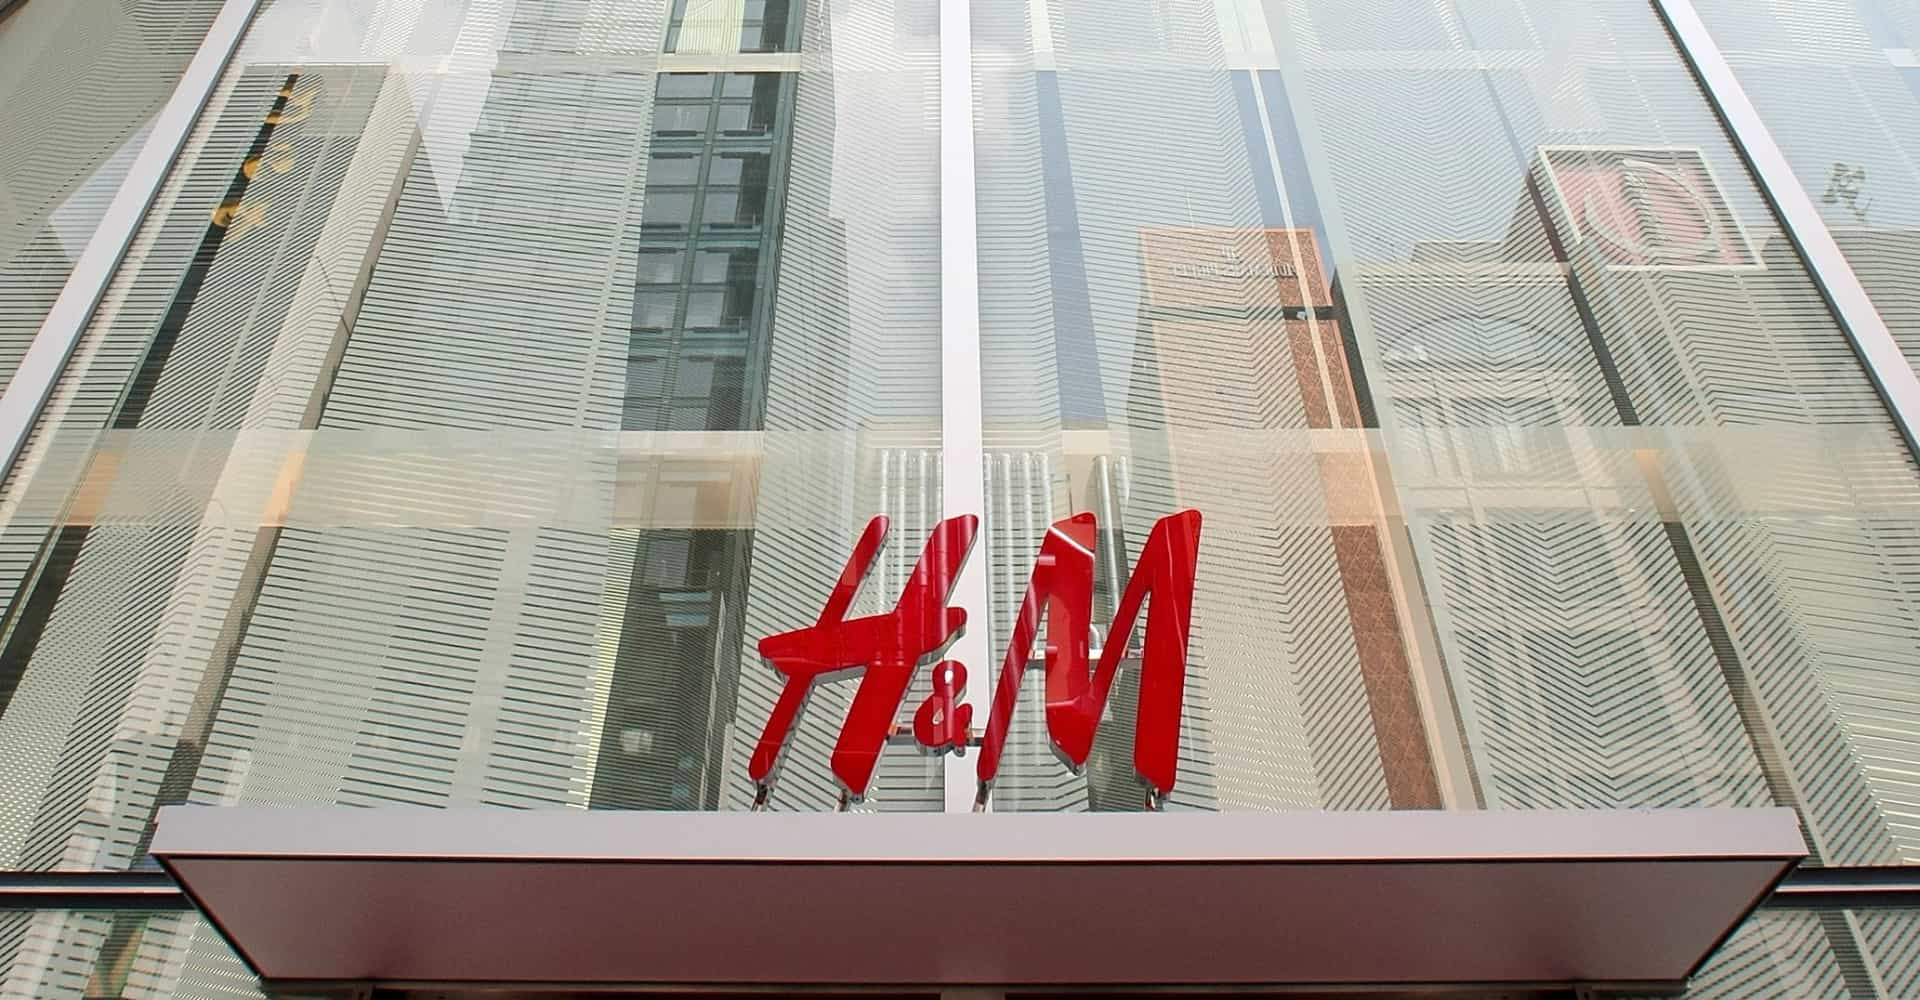 Off the wall: Graffiti artists boycot H&M for copying designs